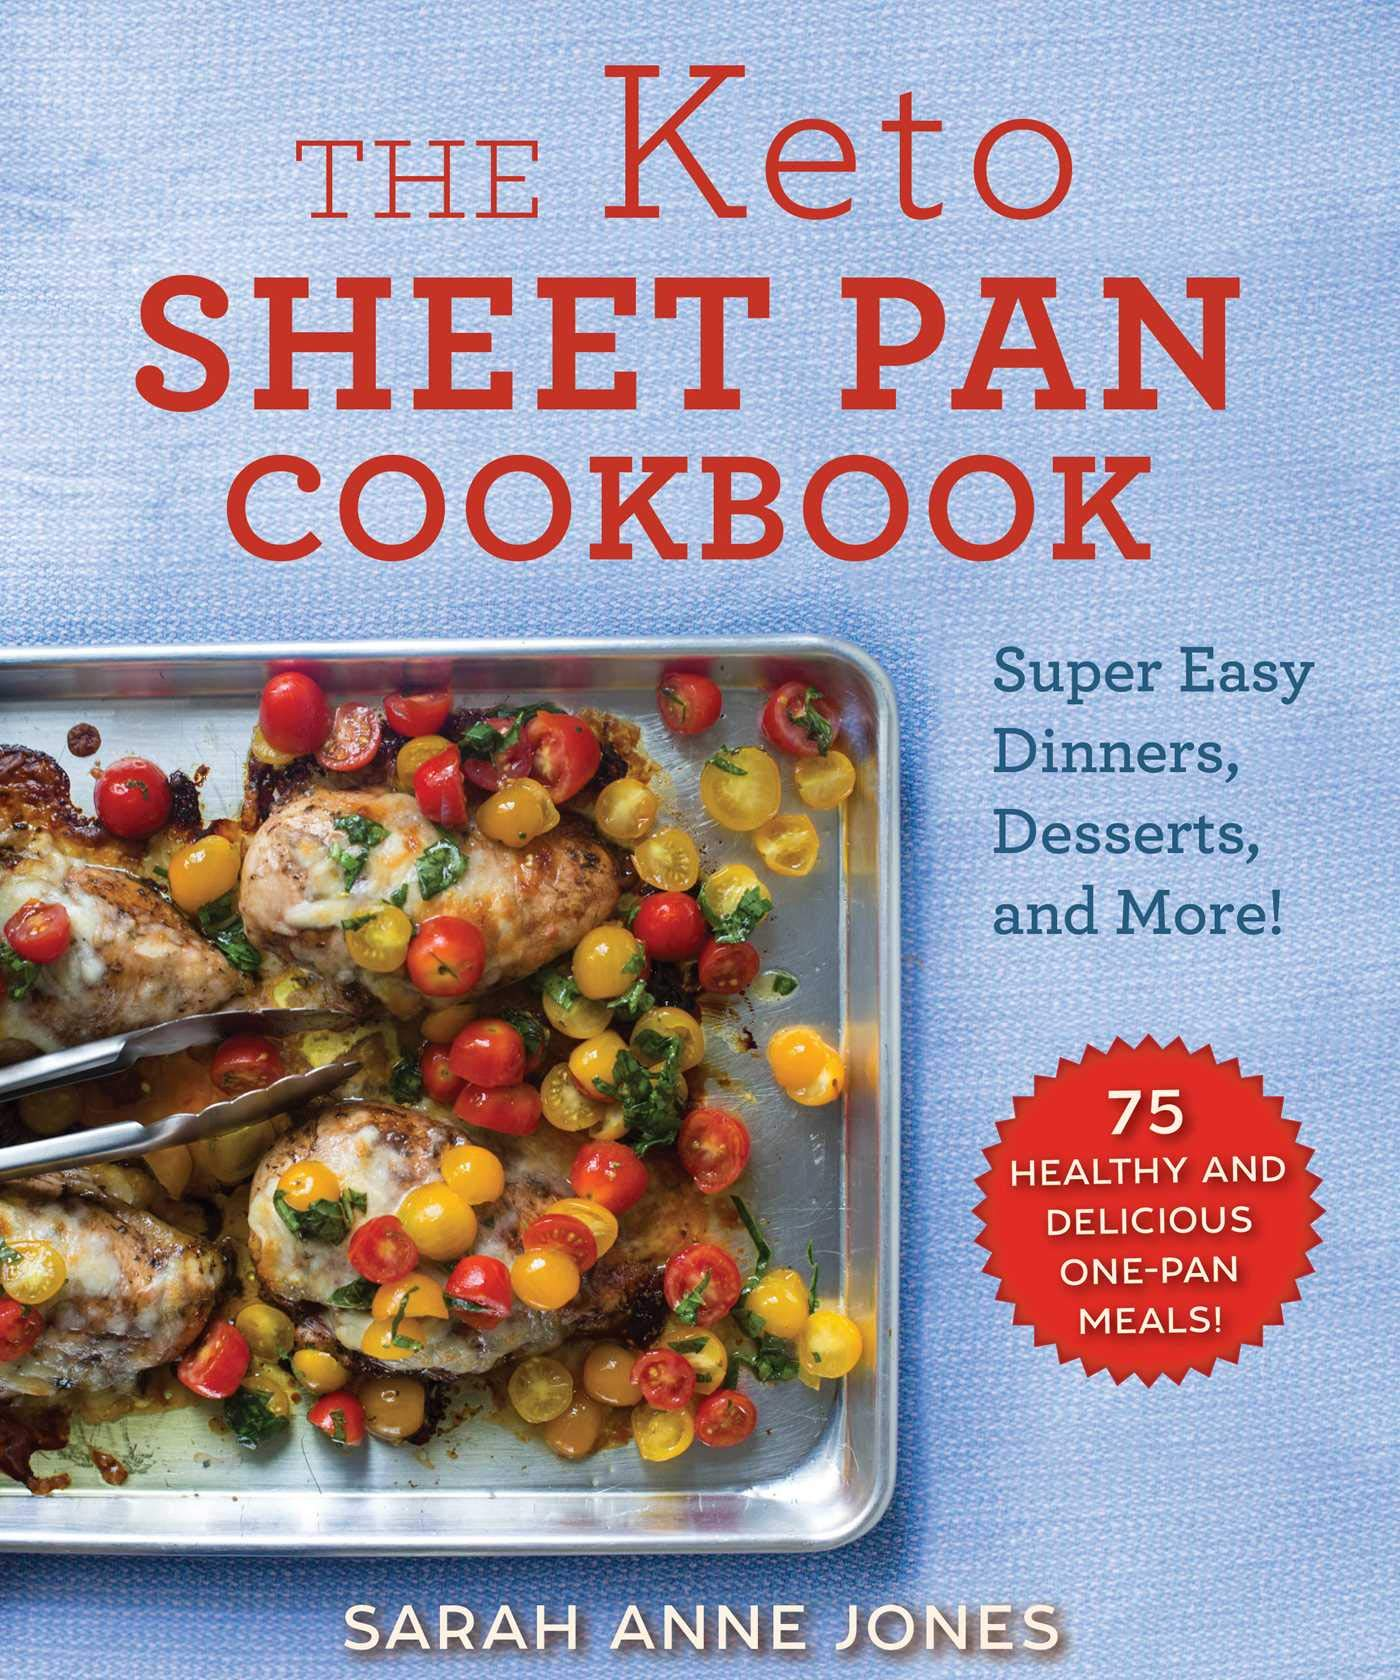 The Keto Sheet Pan Cookbook: Super Easy Dinners, Desserts, and More! by Skyhorse